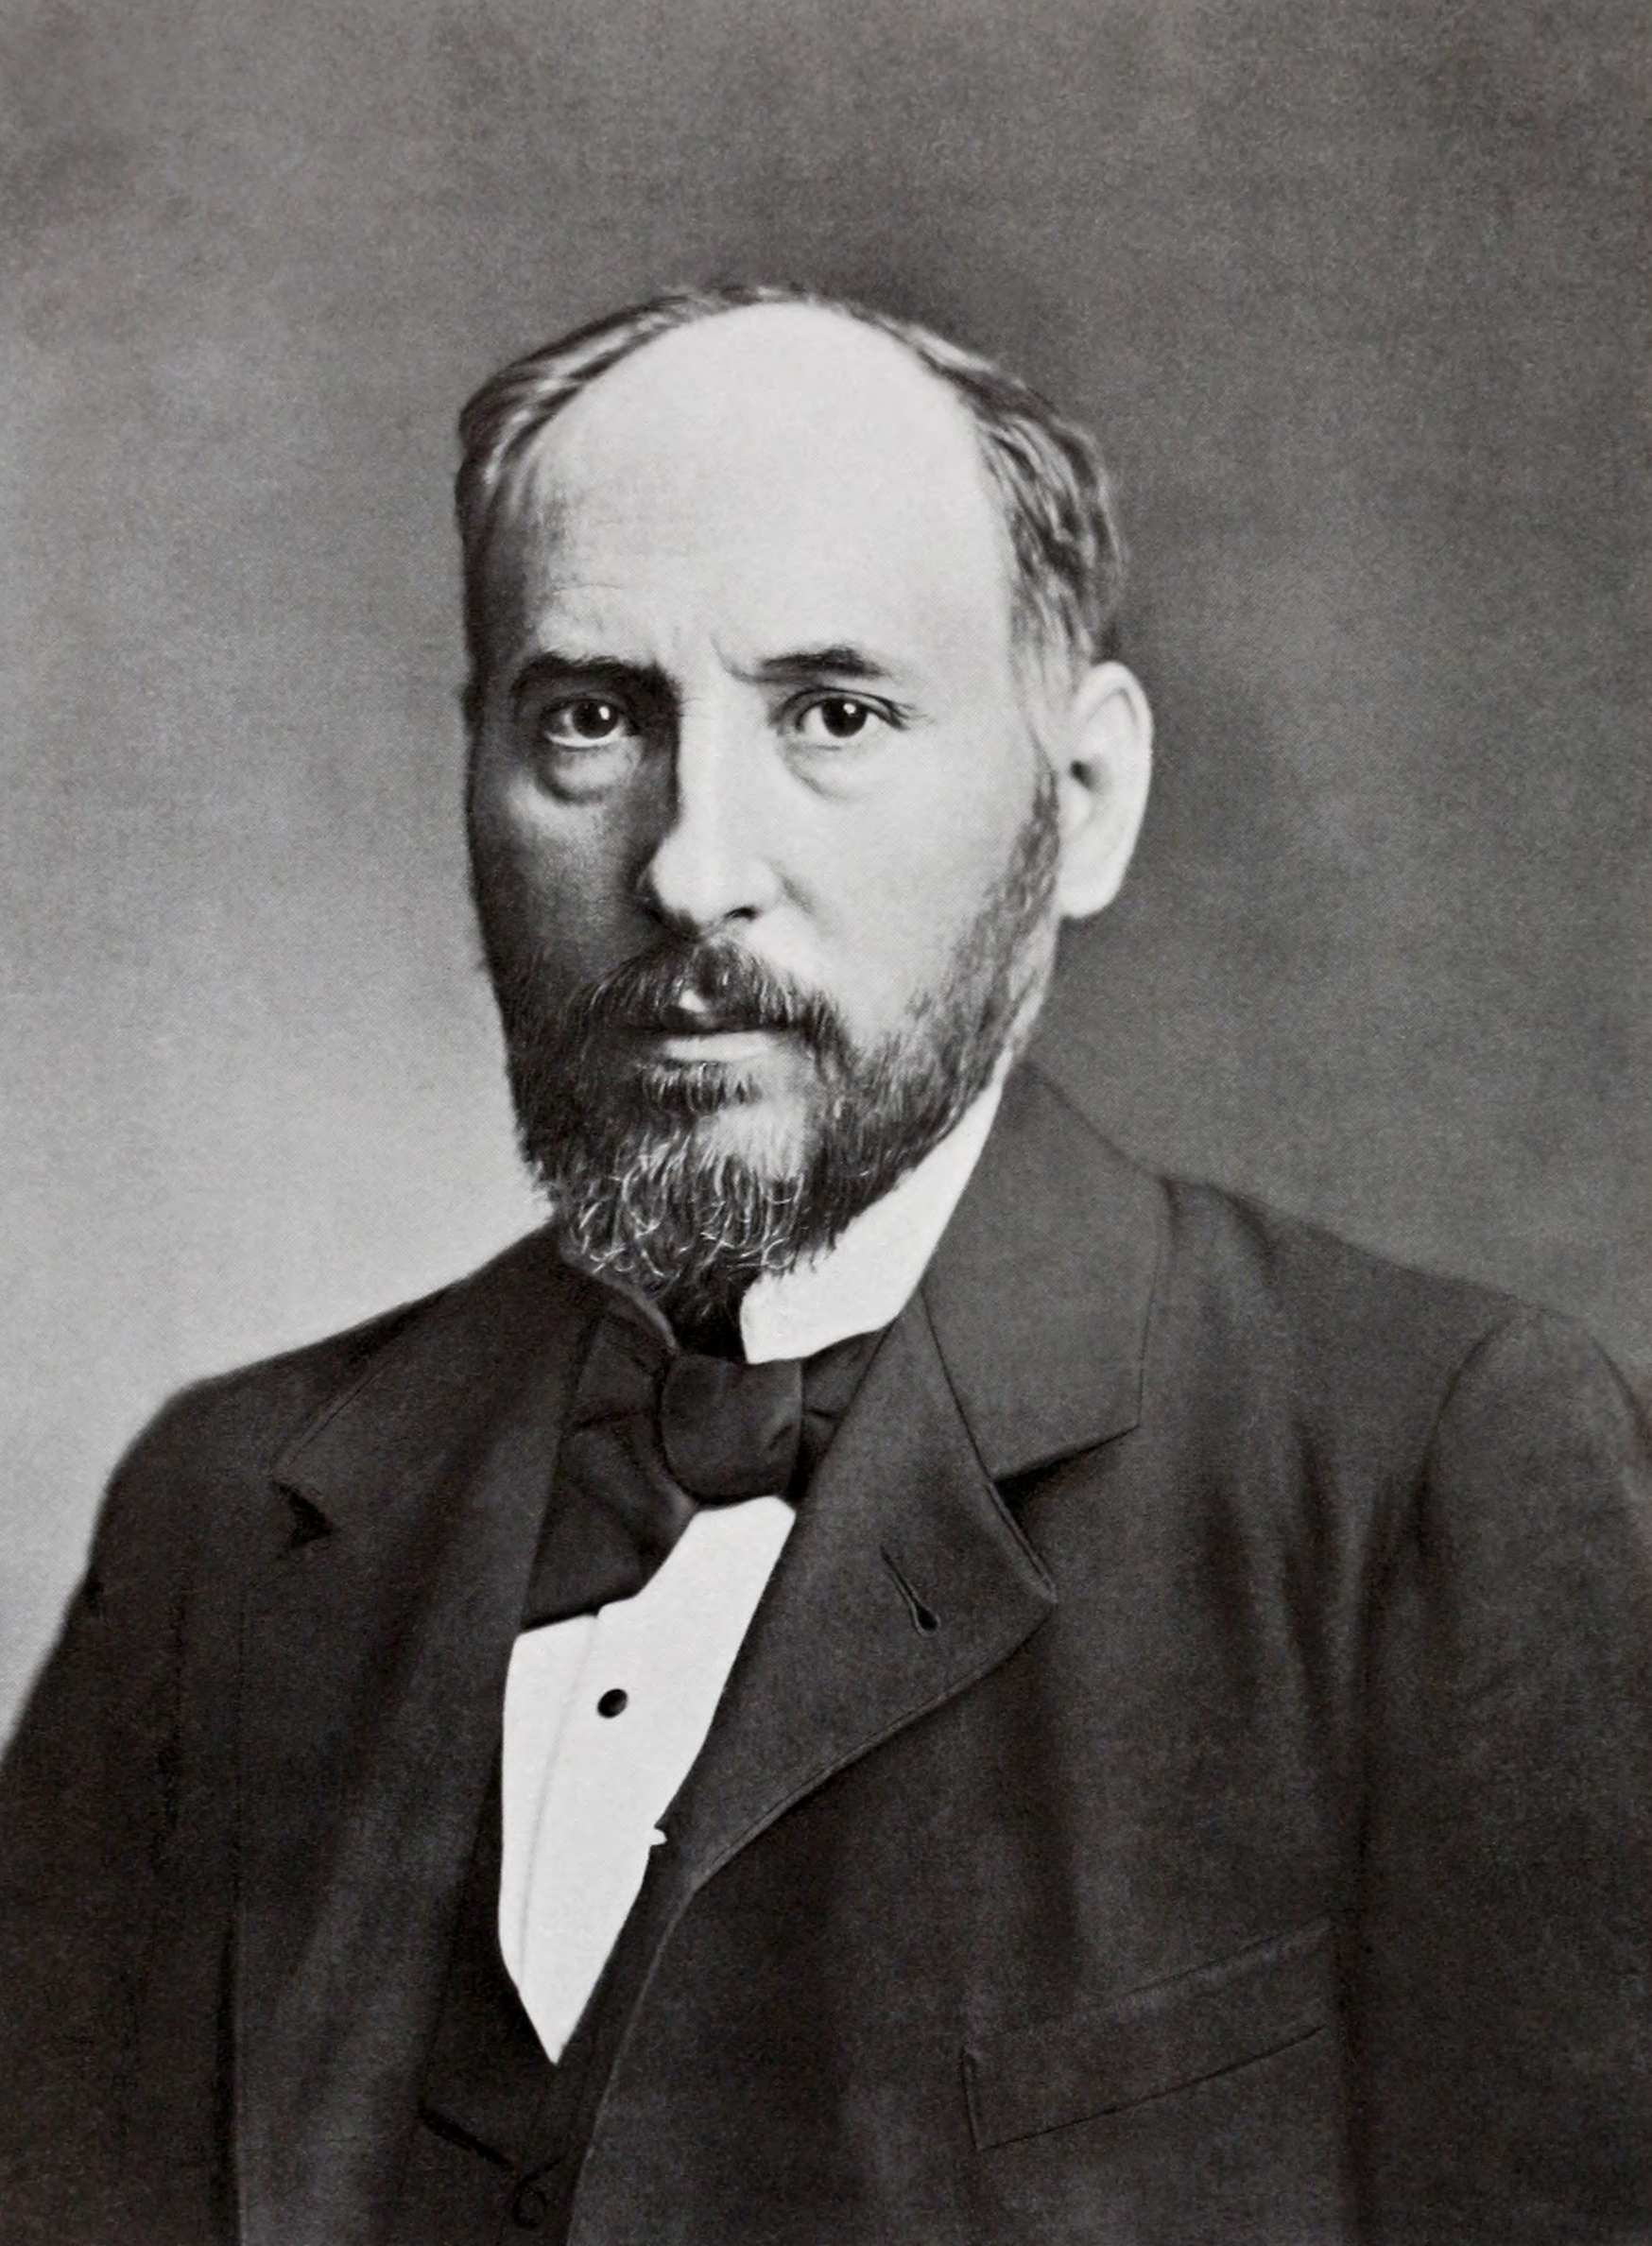 Image of Santiago Ramon y Cajal from Wikidata